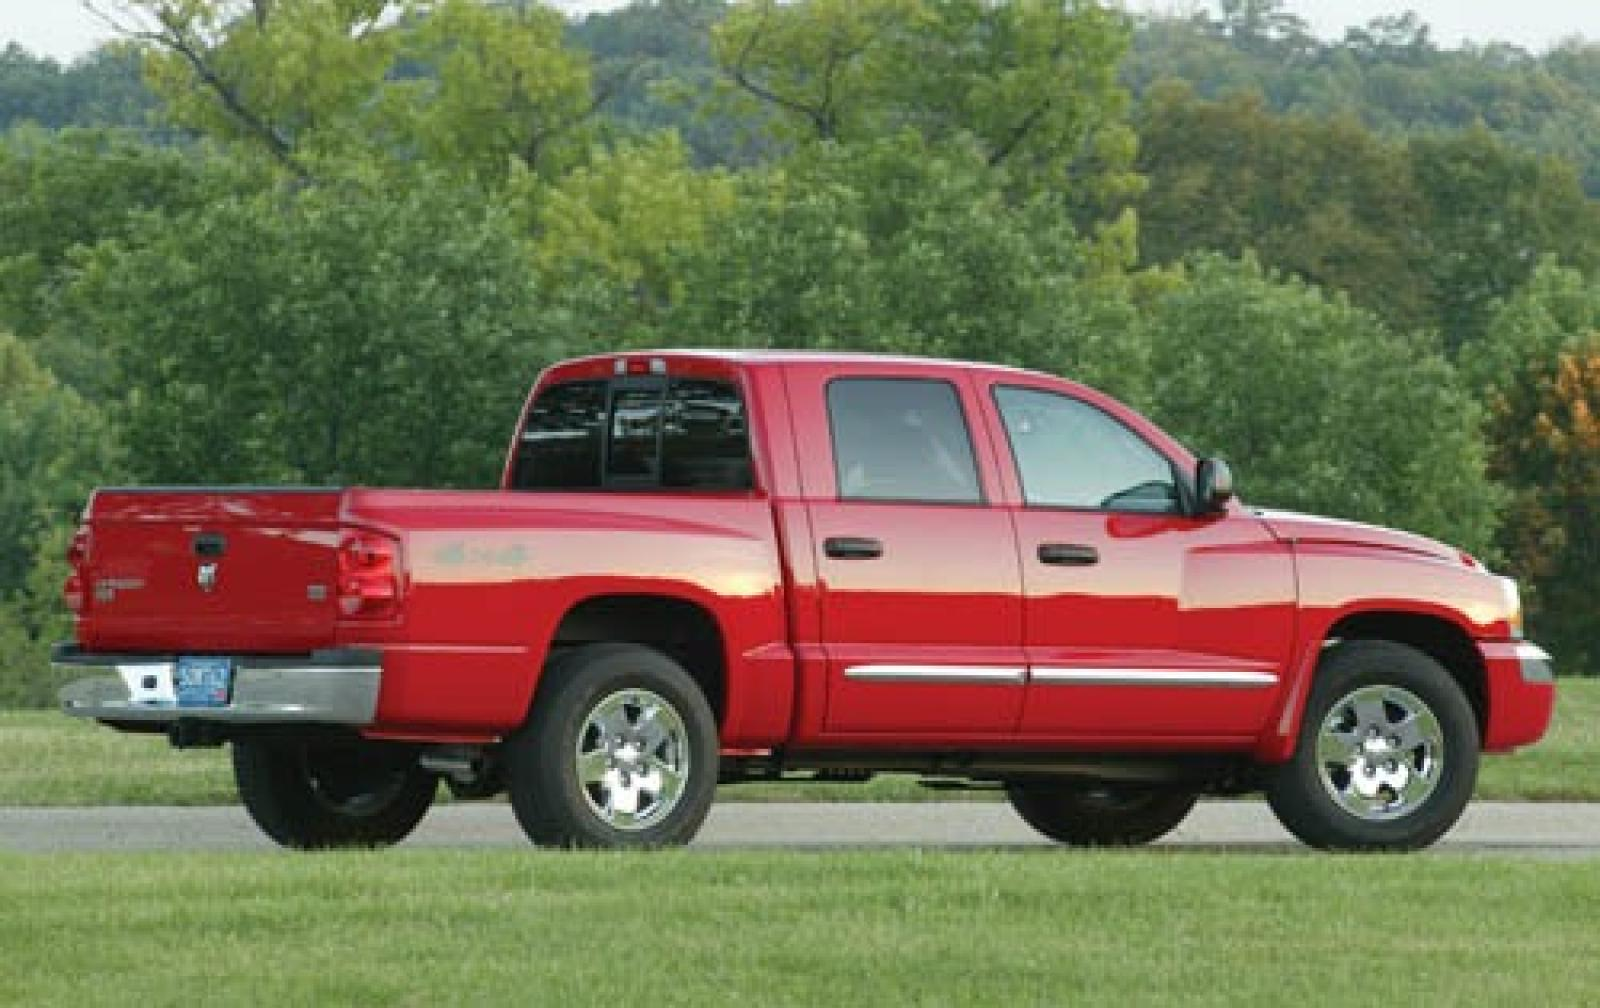 2006 dodge dakota information and photos zombiedrive. Black Bedroom Furniture Sets. Home Design Ideas